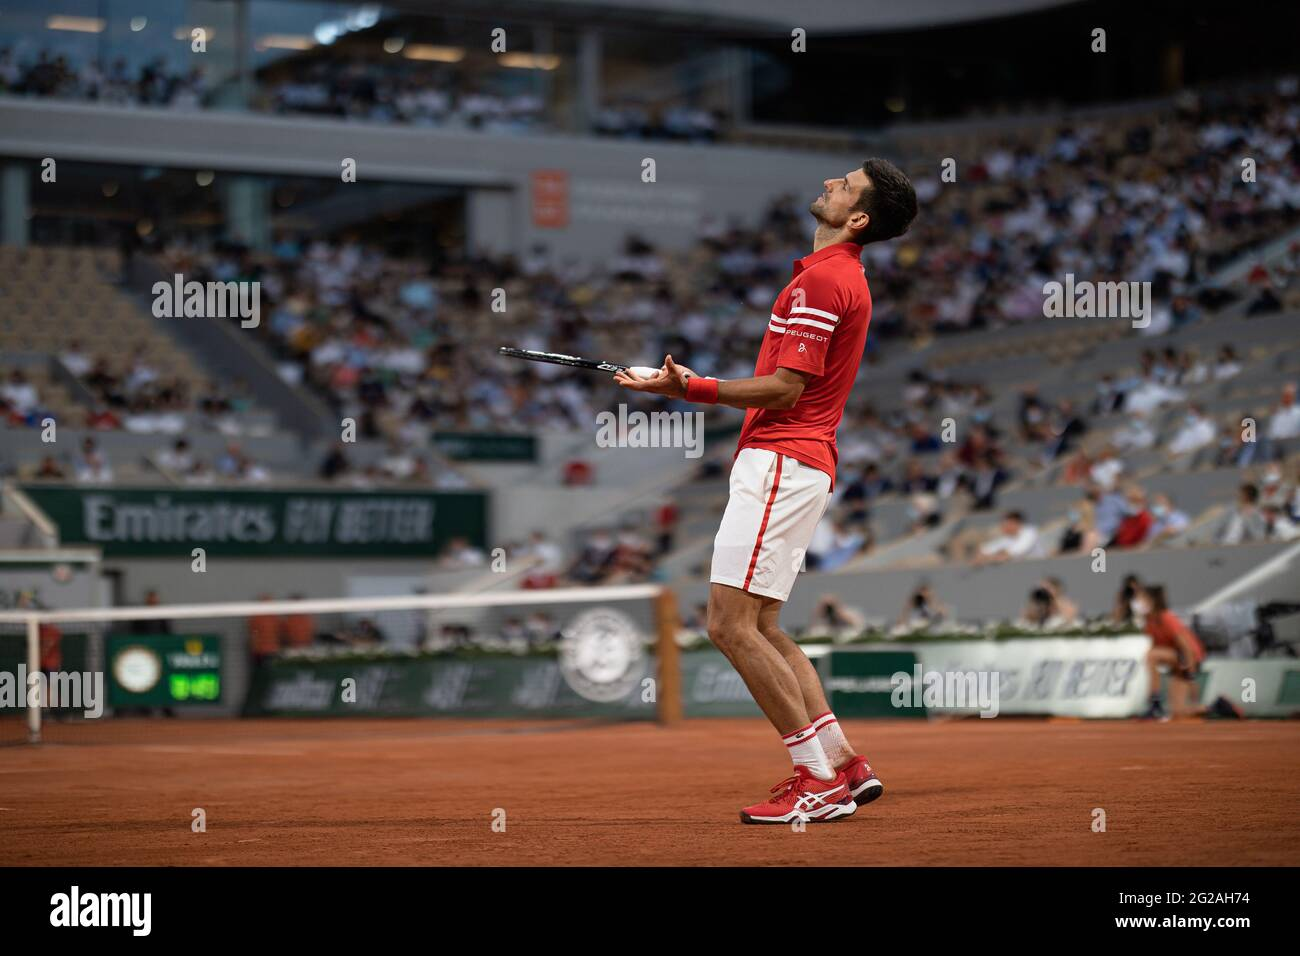 Paris, France. 9th June, 2021. Novak Djokovic of Serbia reacts during the men's singles quarterfinal against Matteo Berrettini of Italy at the French Open tennis tournament at Roland Garros in Paris, France, June 9, 2021. Credit: Aurelien Morissard/Xinhua/Alamy Live News Stock Photo